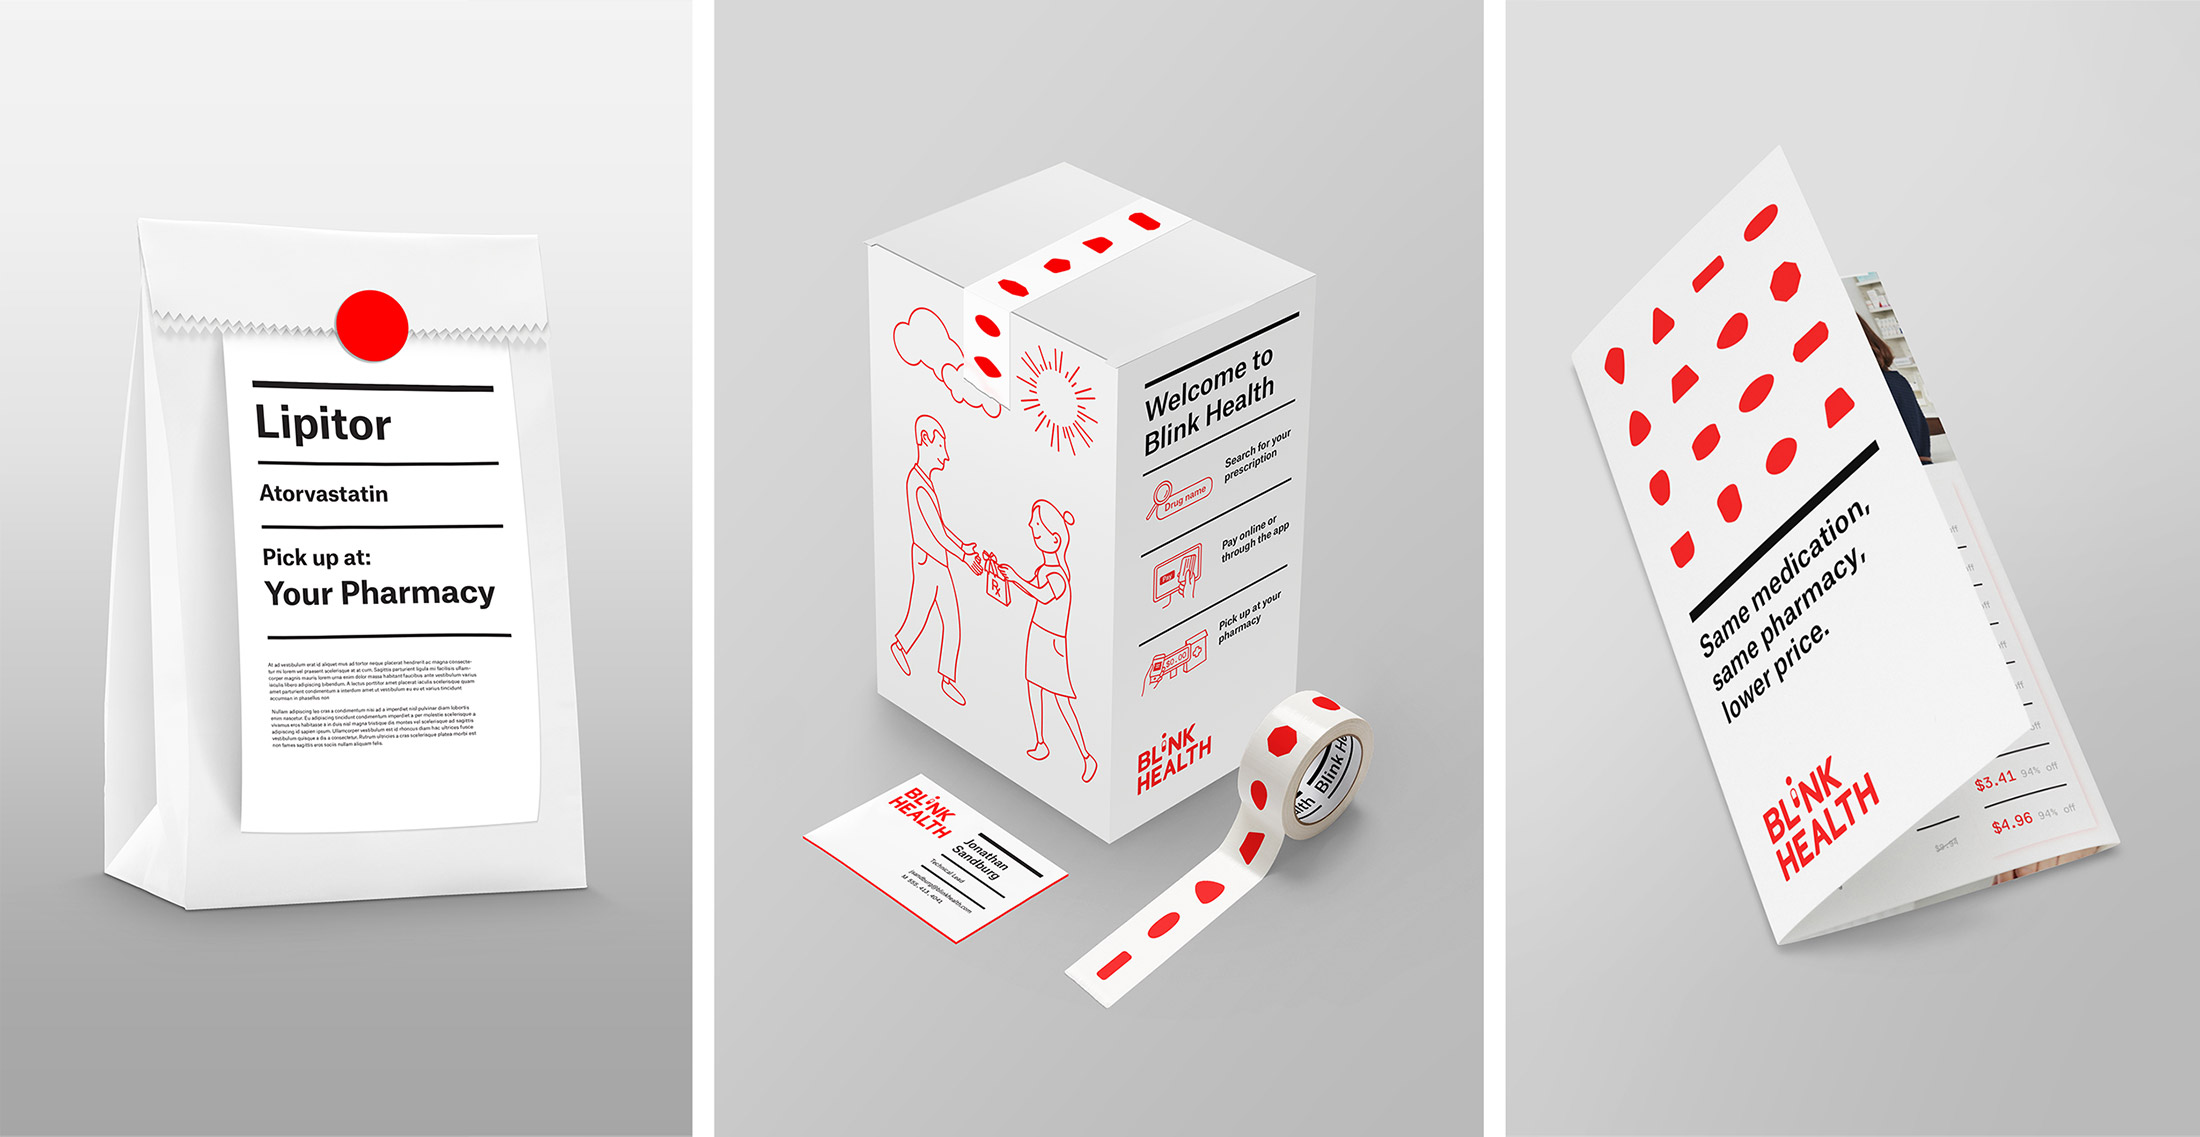 Collateral and Packaging Design for Blink Health